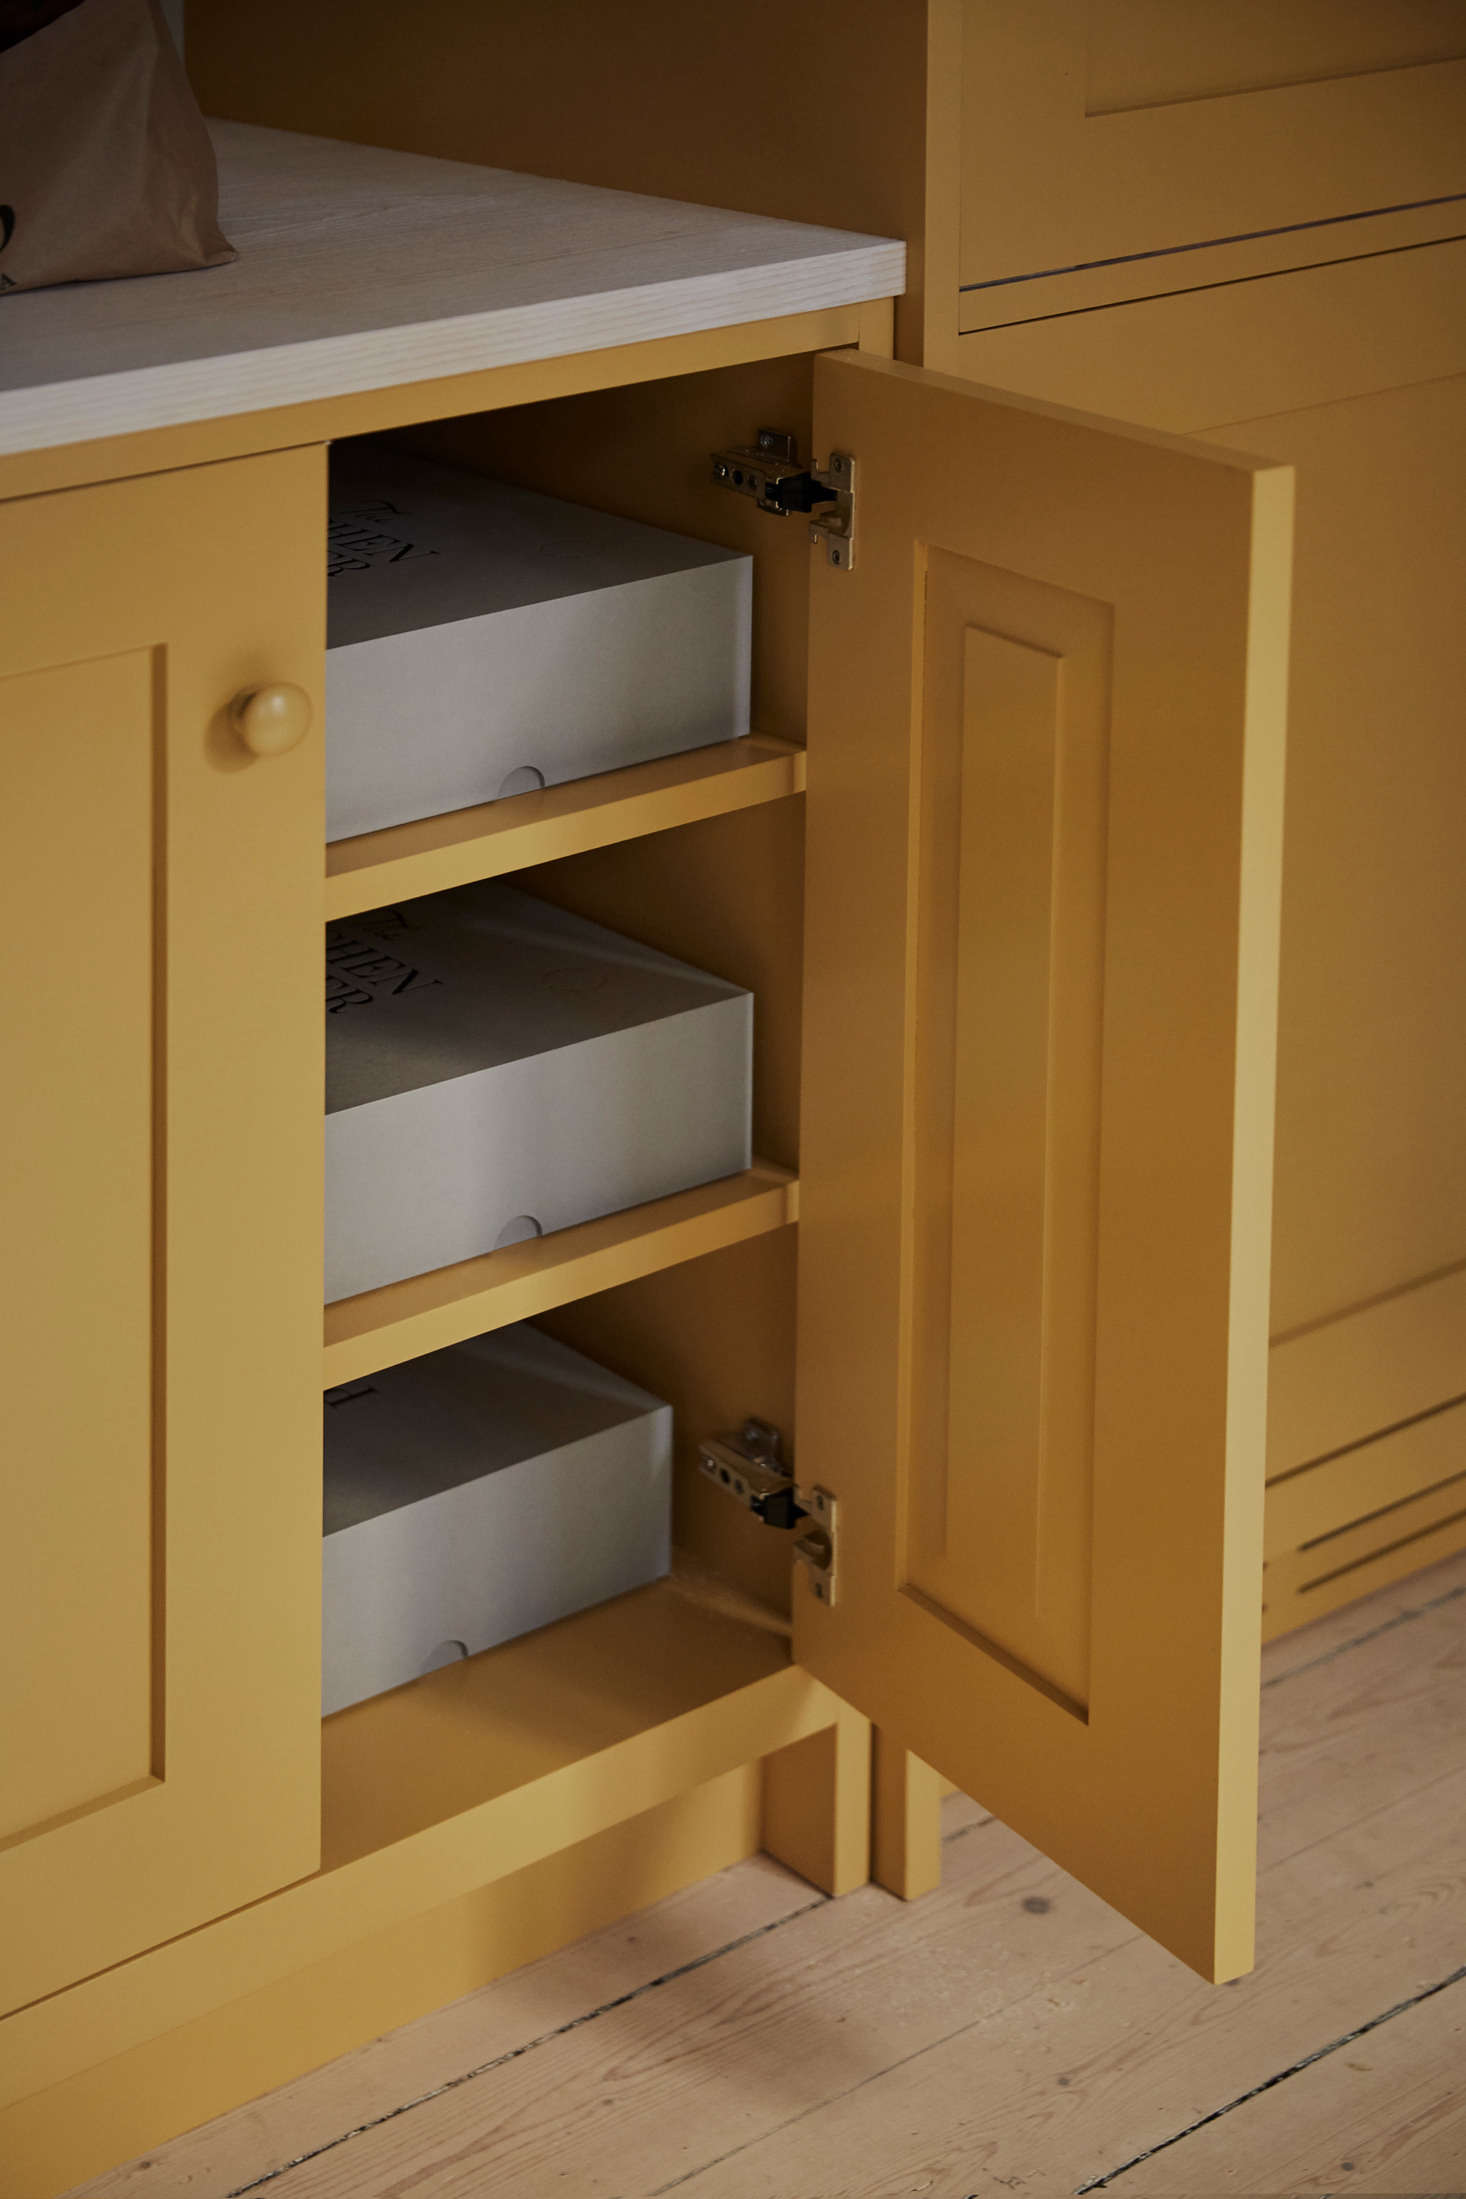 The cabinets and drawers are made of solid oak with dovetail joinery and drawn butt hinges.